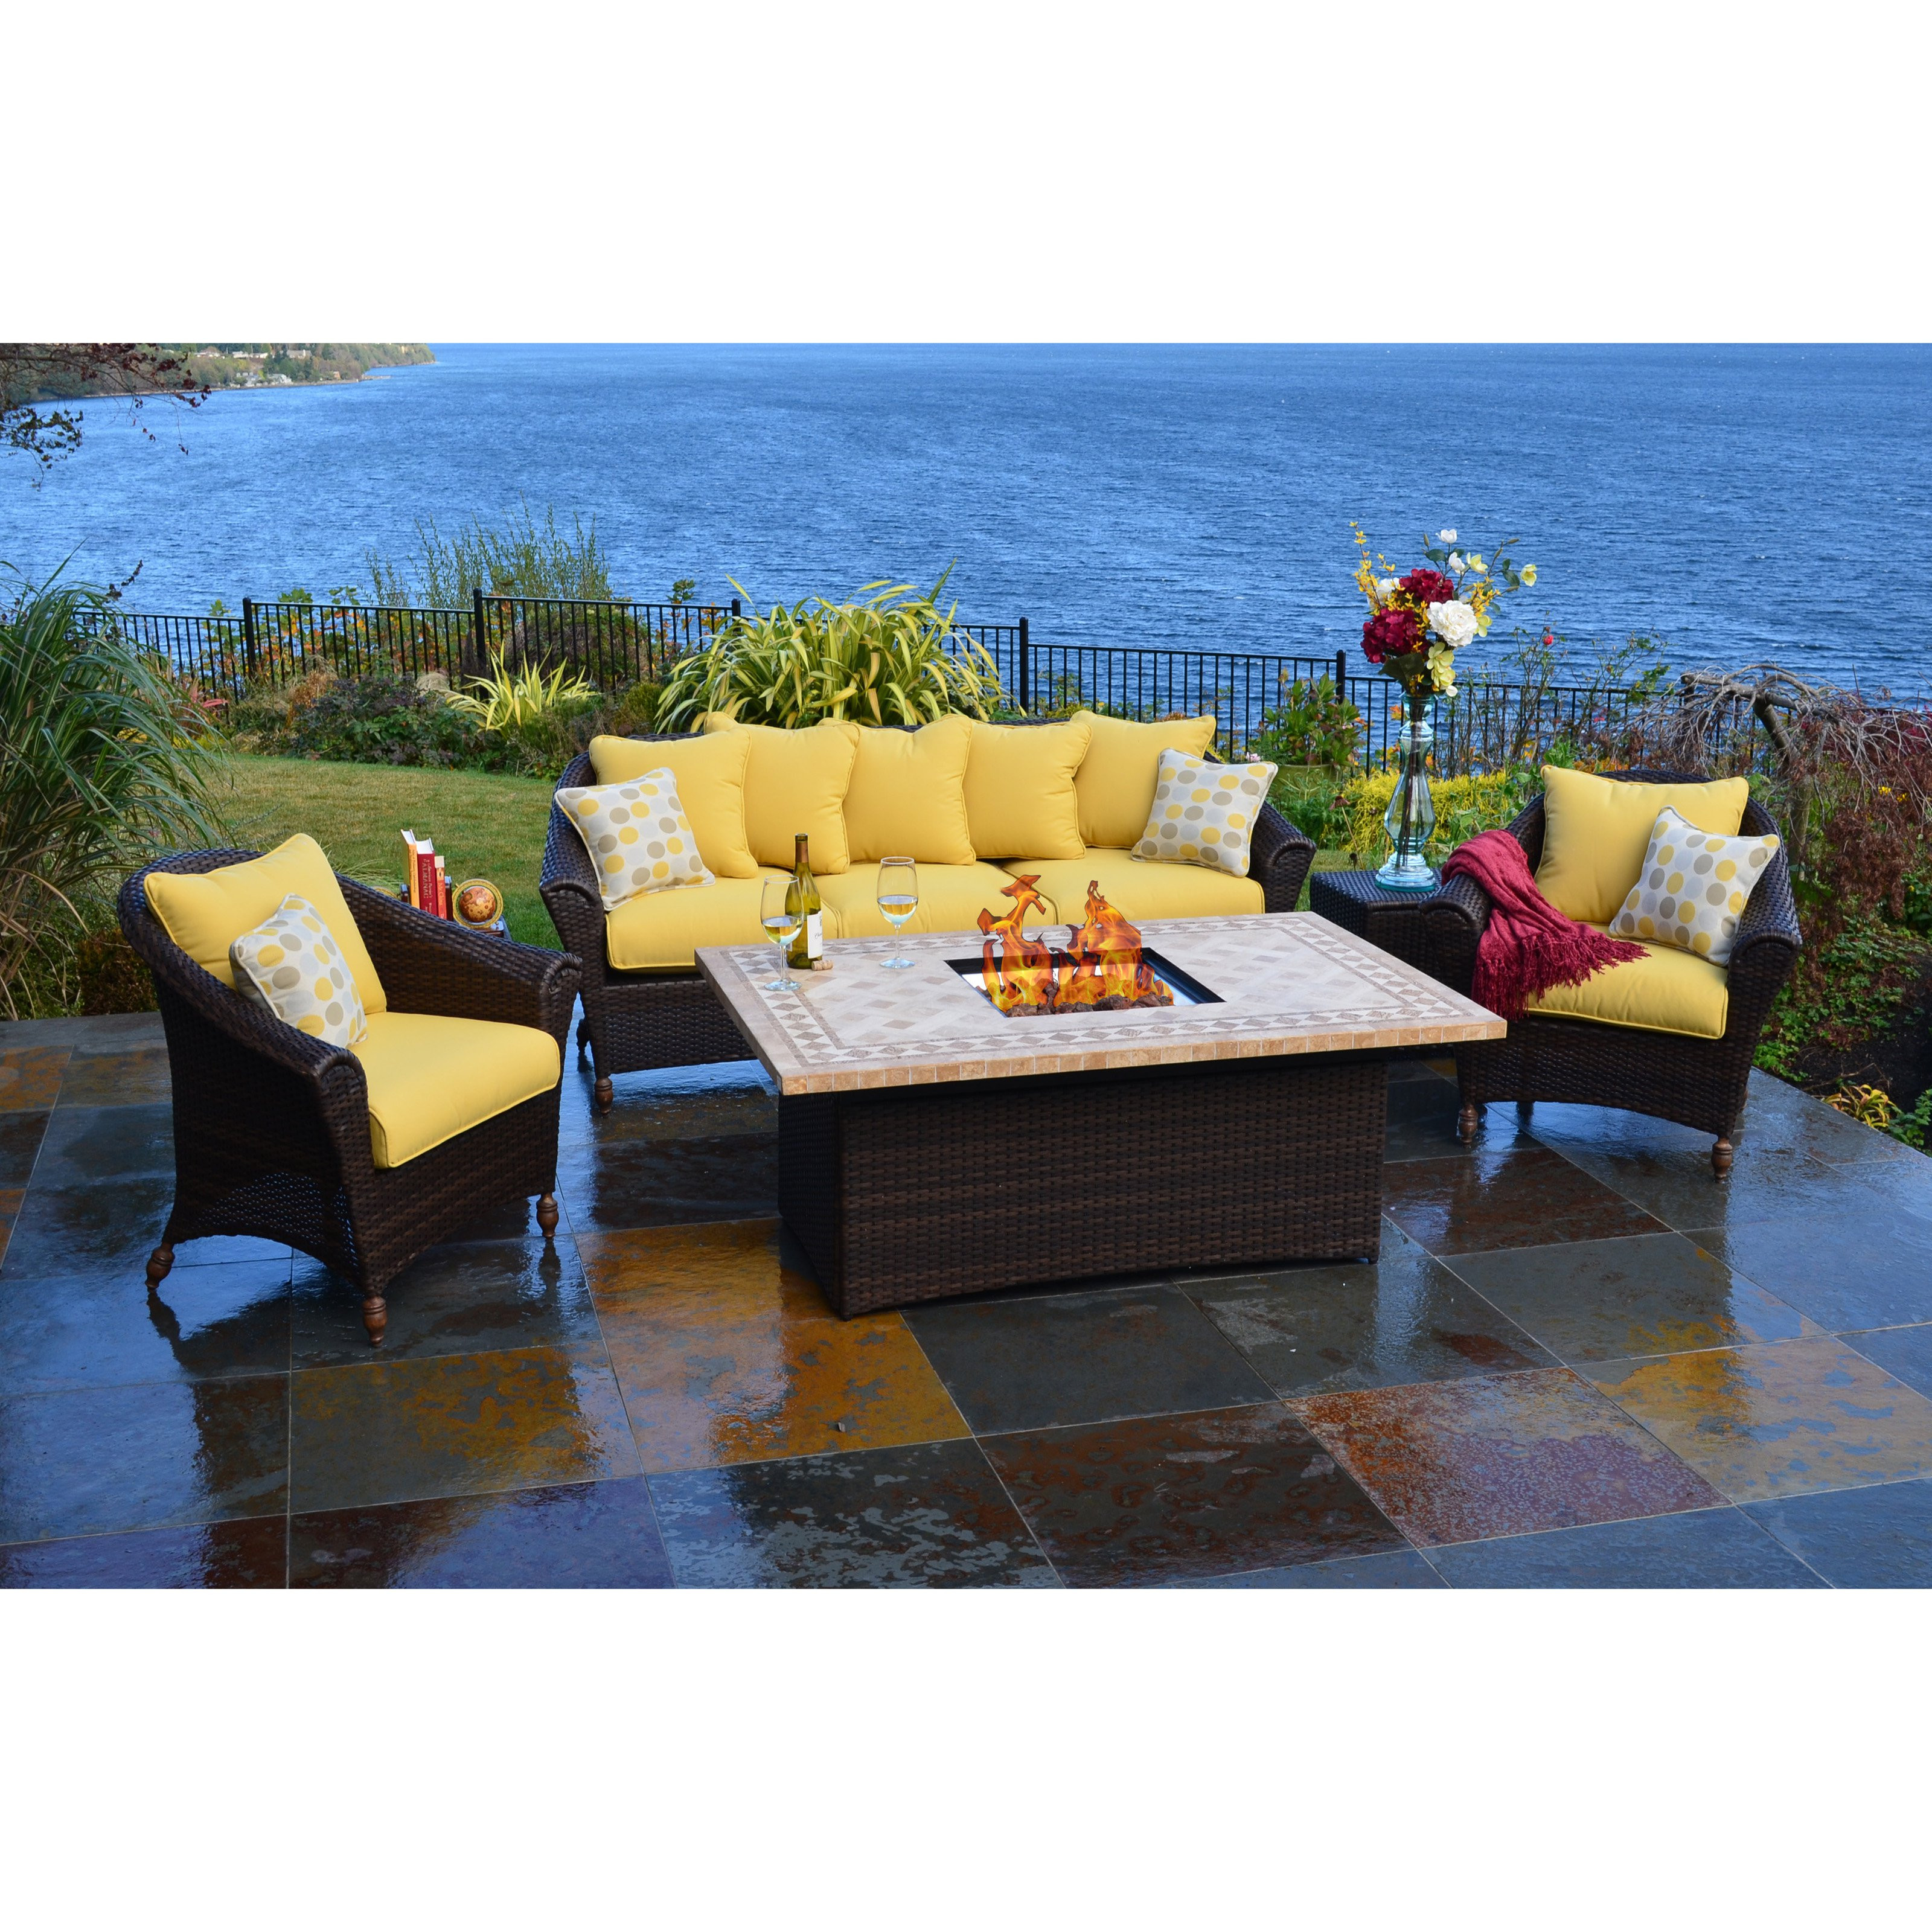 Best ideas about Outdoor Fire Pit Sets . Save or Pin Bellamar All Weather Wicker Fire Pit Chat Set Fire Pit Now.